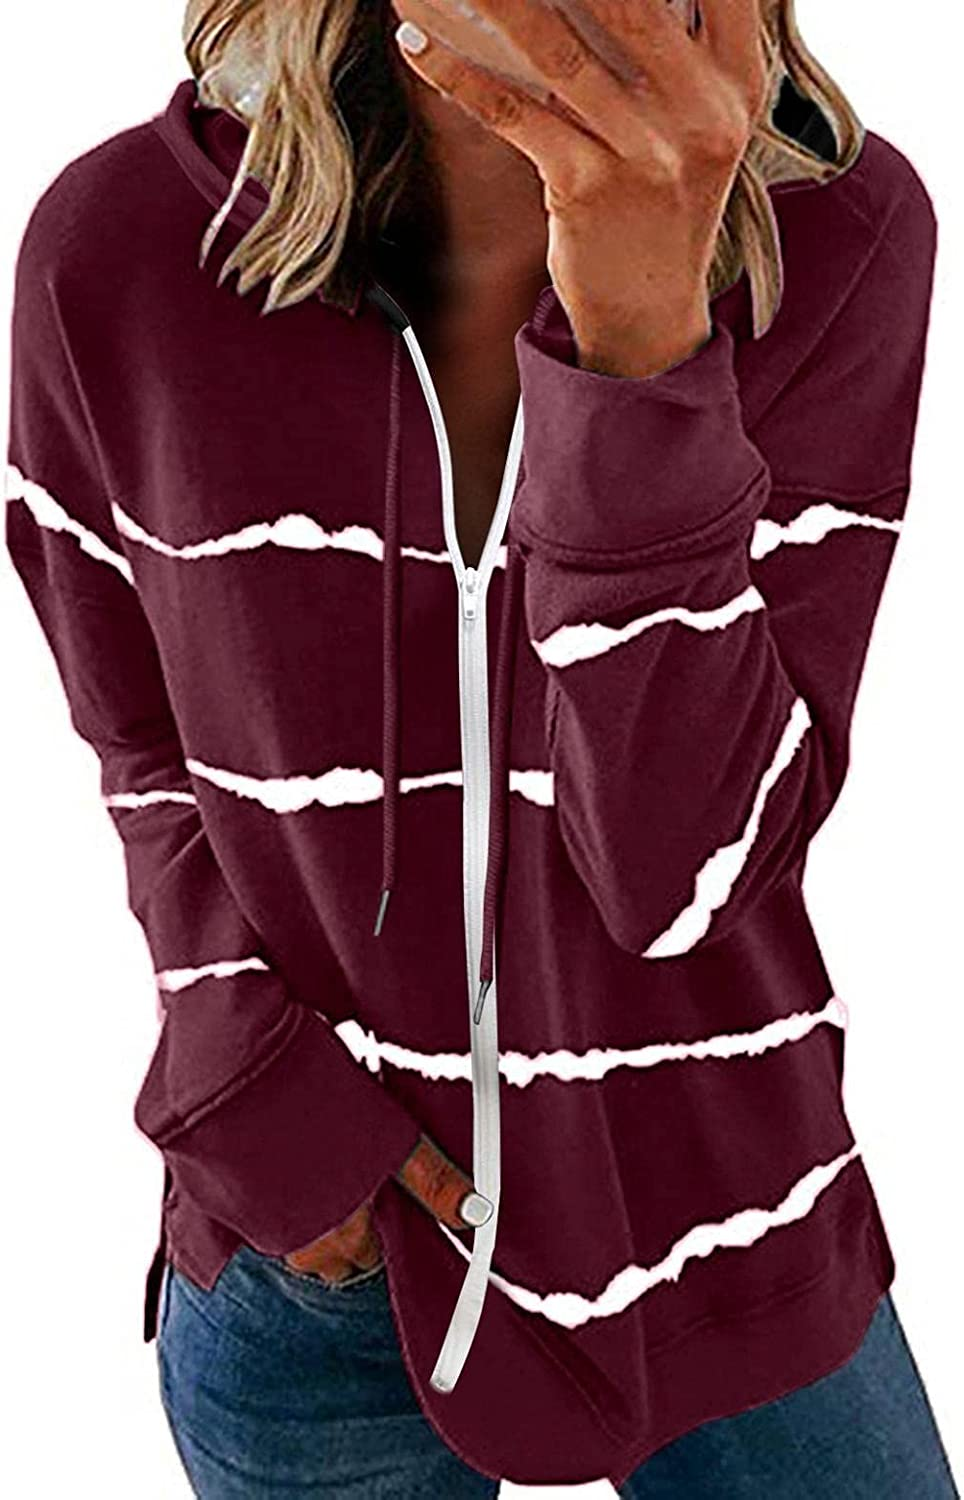 Sweatshirts for Women,Womens Plus Size Casual Sweatshirts Crewneck Long Sleeve Print Color Matching Pullover